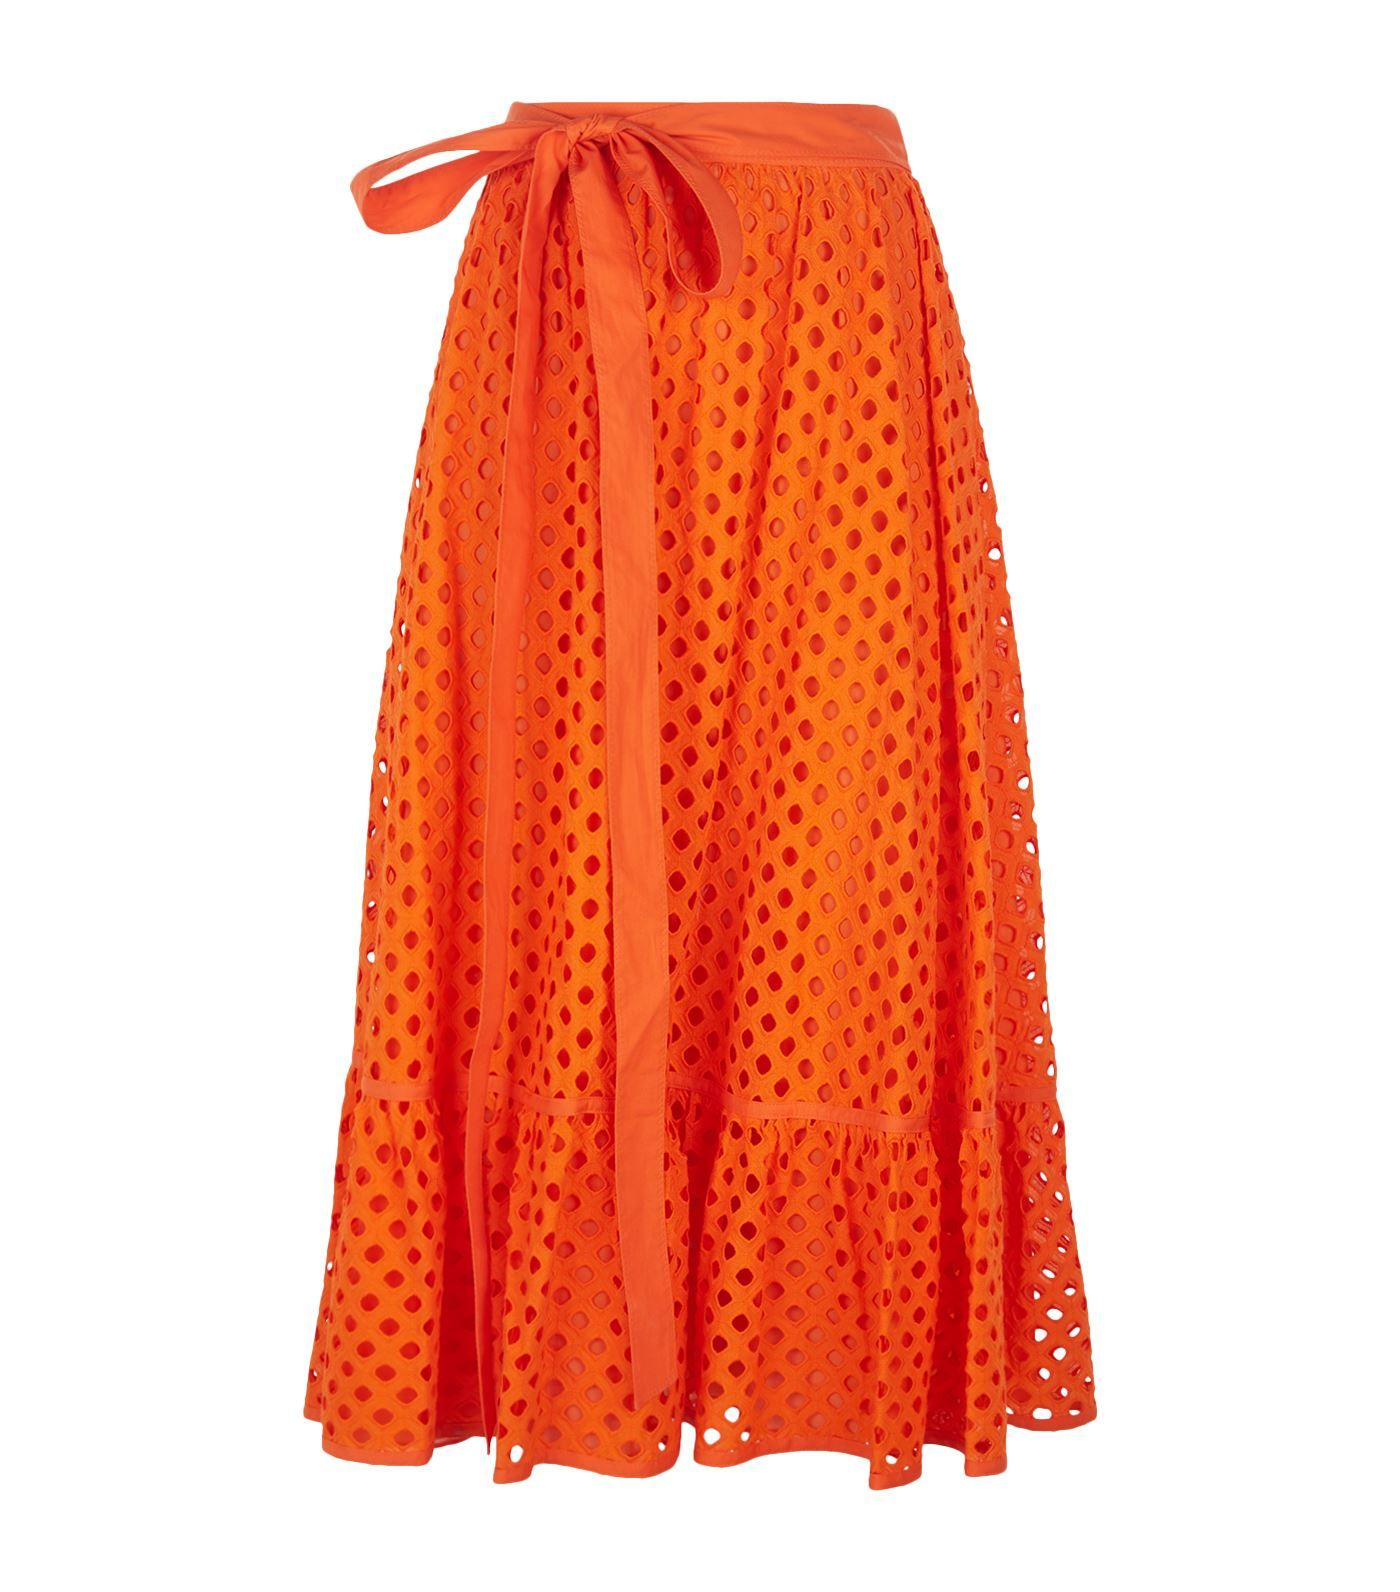 d0a22d85ad Tory Burch Hermosa Eyelet Cut-Out Midi Skirt | Harrods.com | The ...